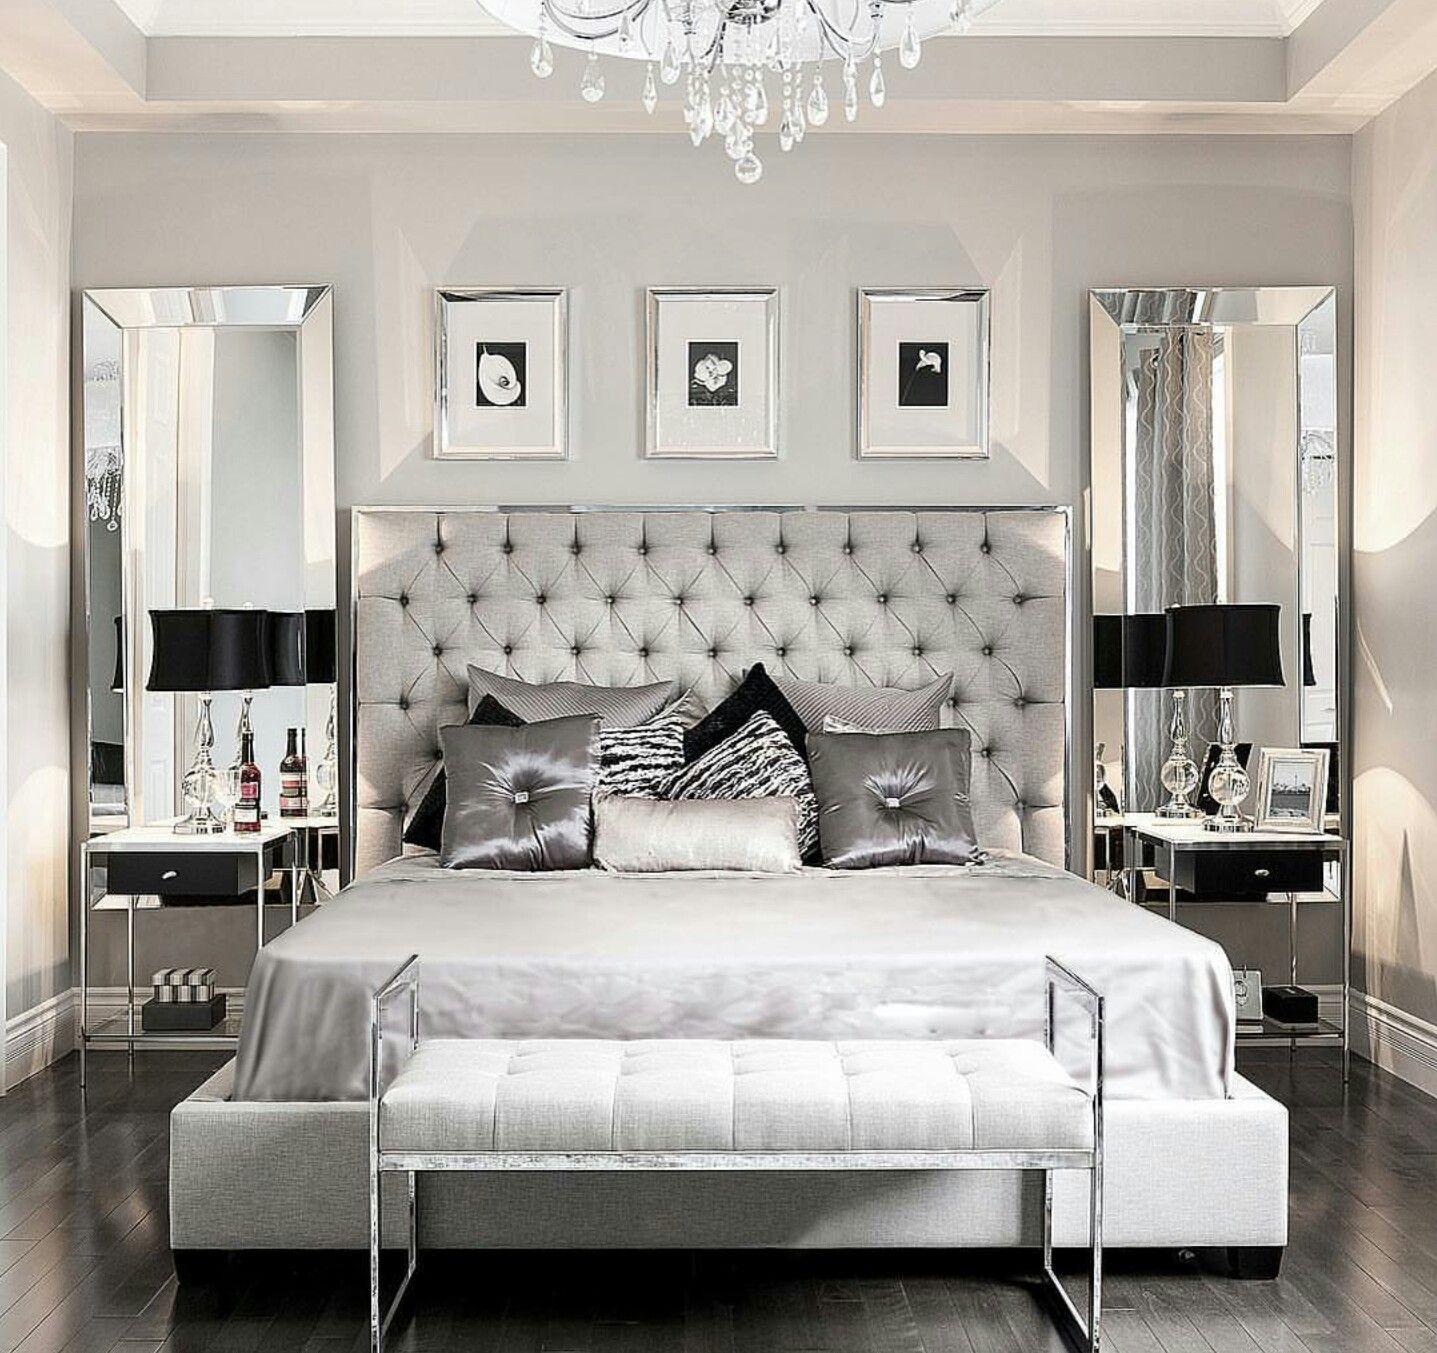 Upscale Luxury Master Bedroom  Glamorous bedroom decor